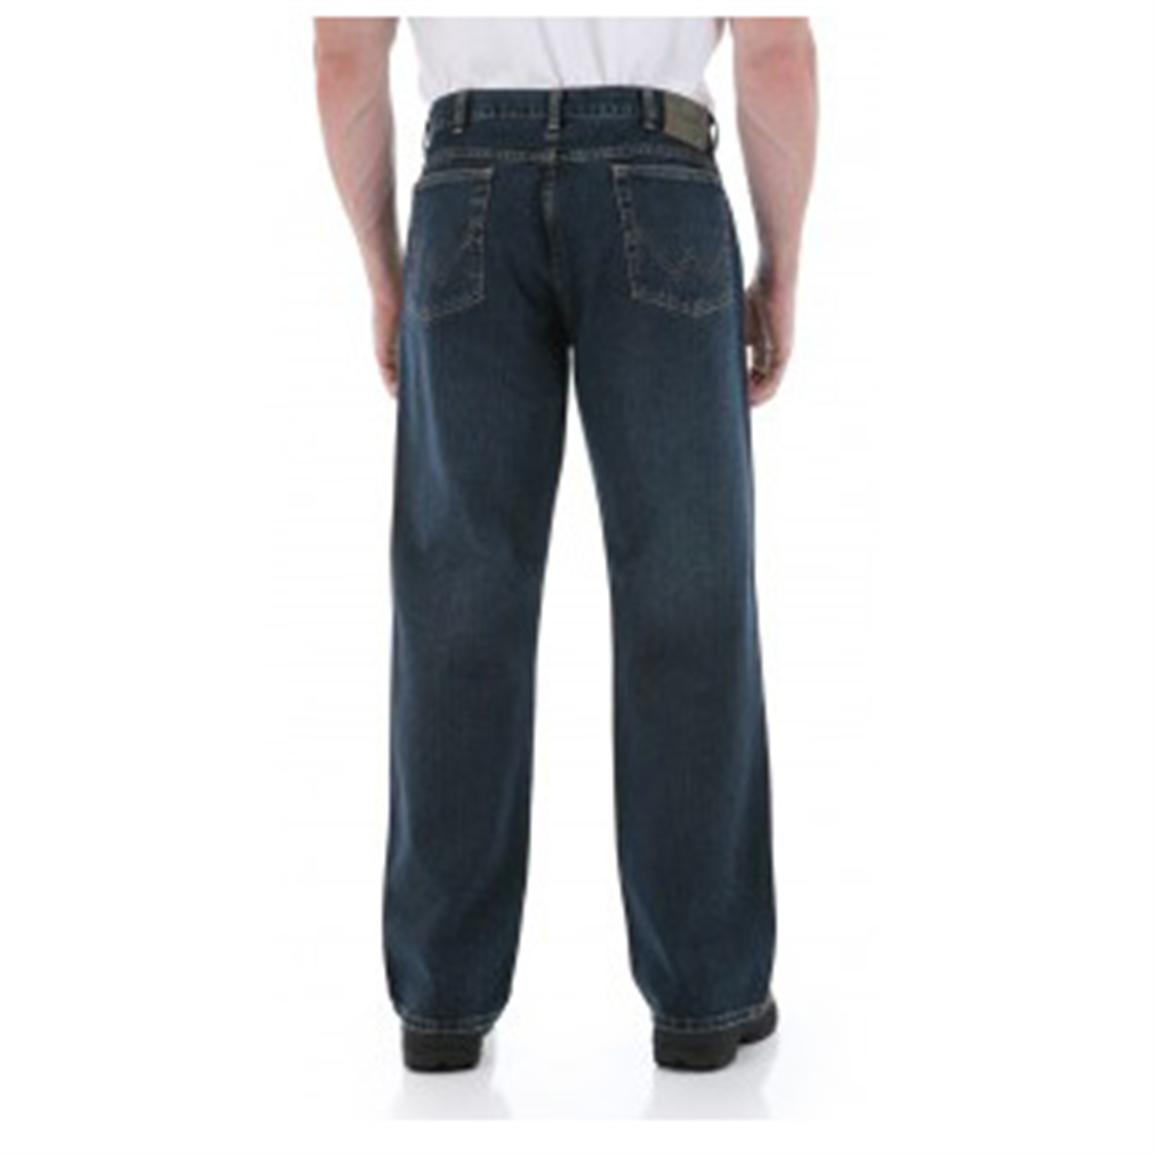 Men's Wrangler® Rugged Wear Relaxed Straight Fit Jeans, Union